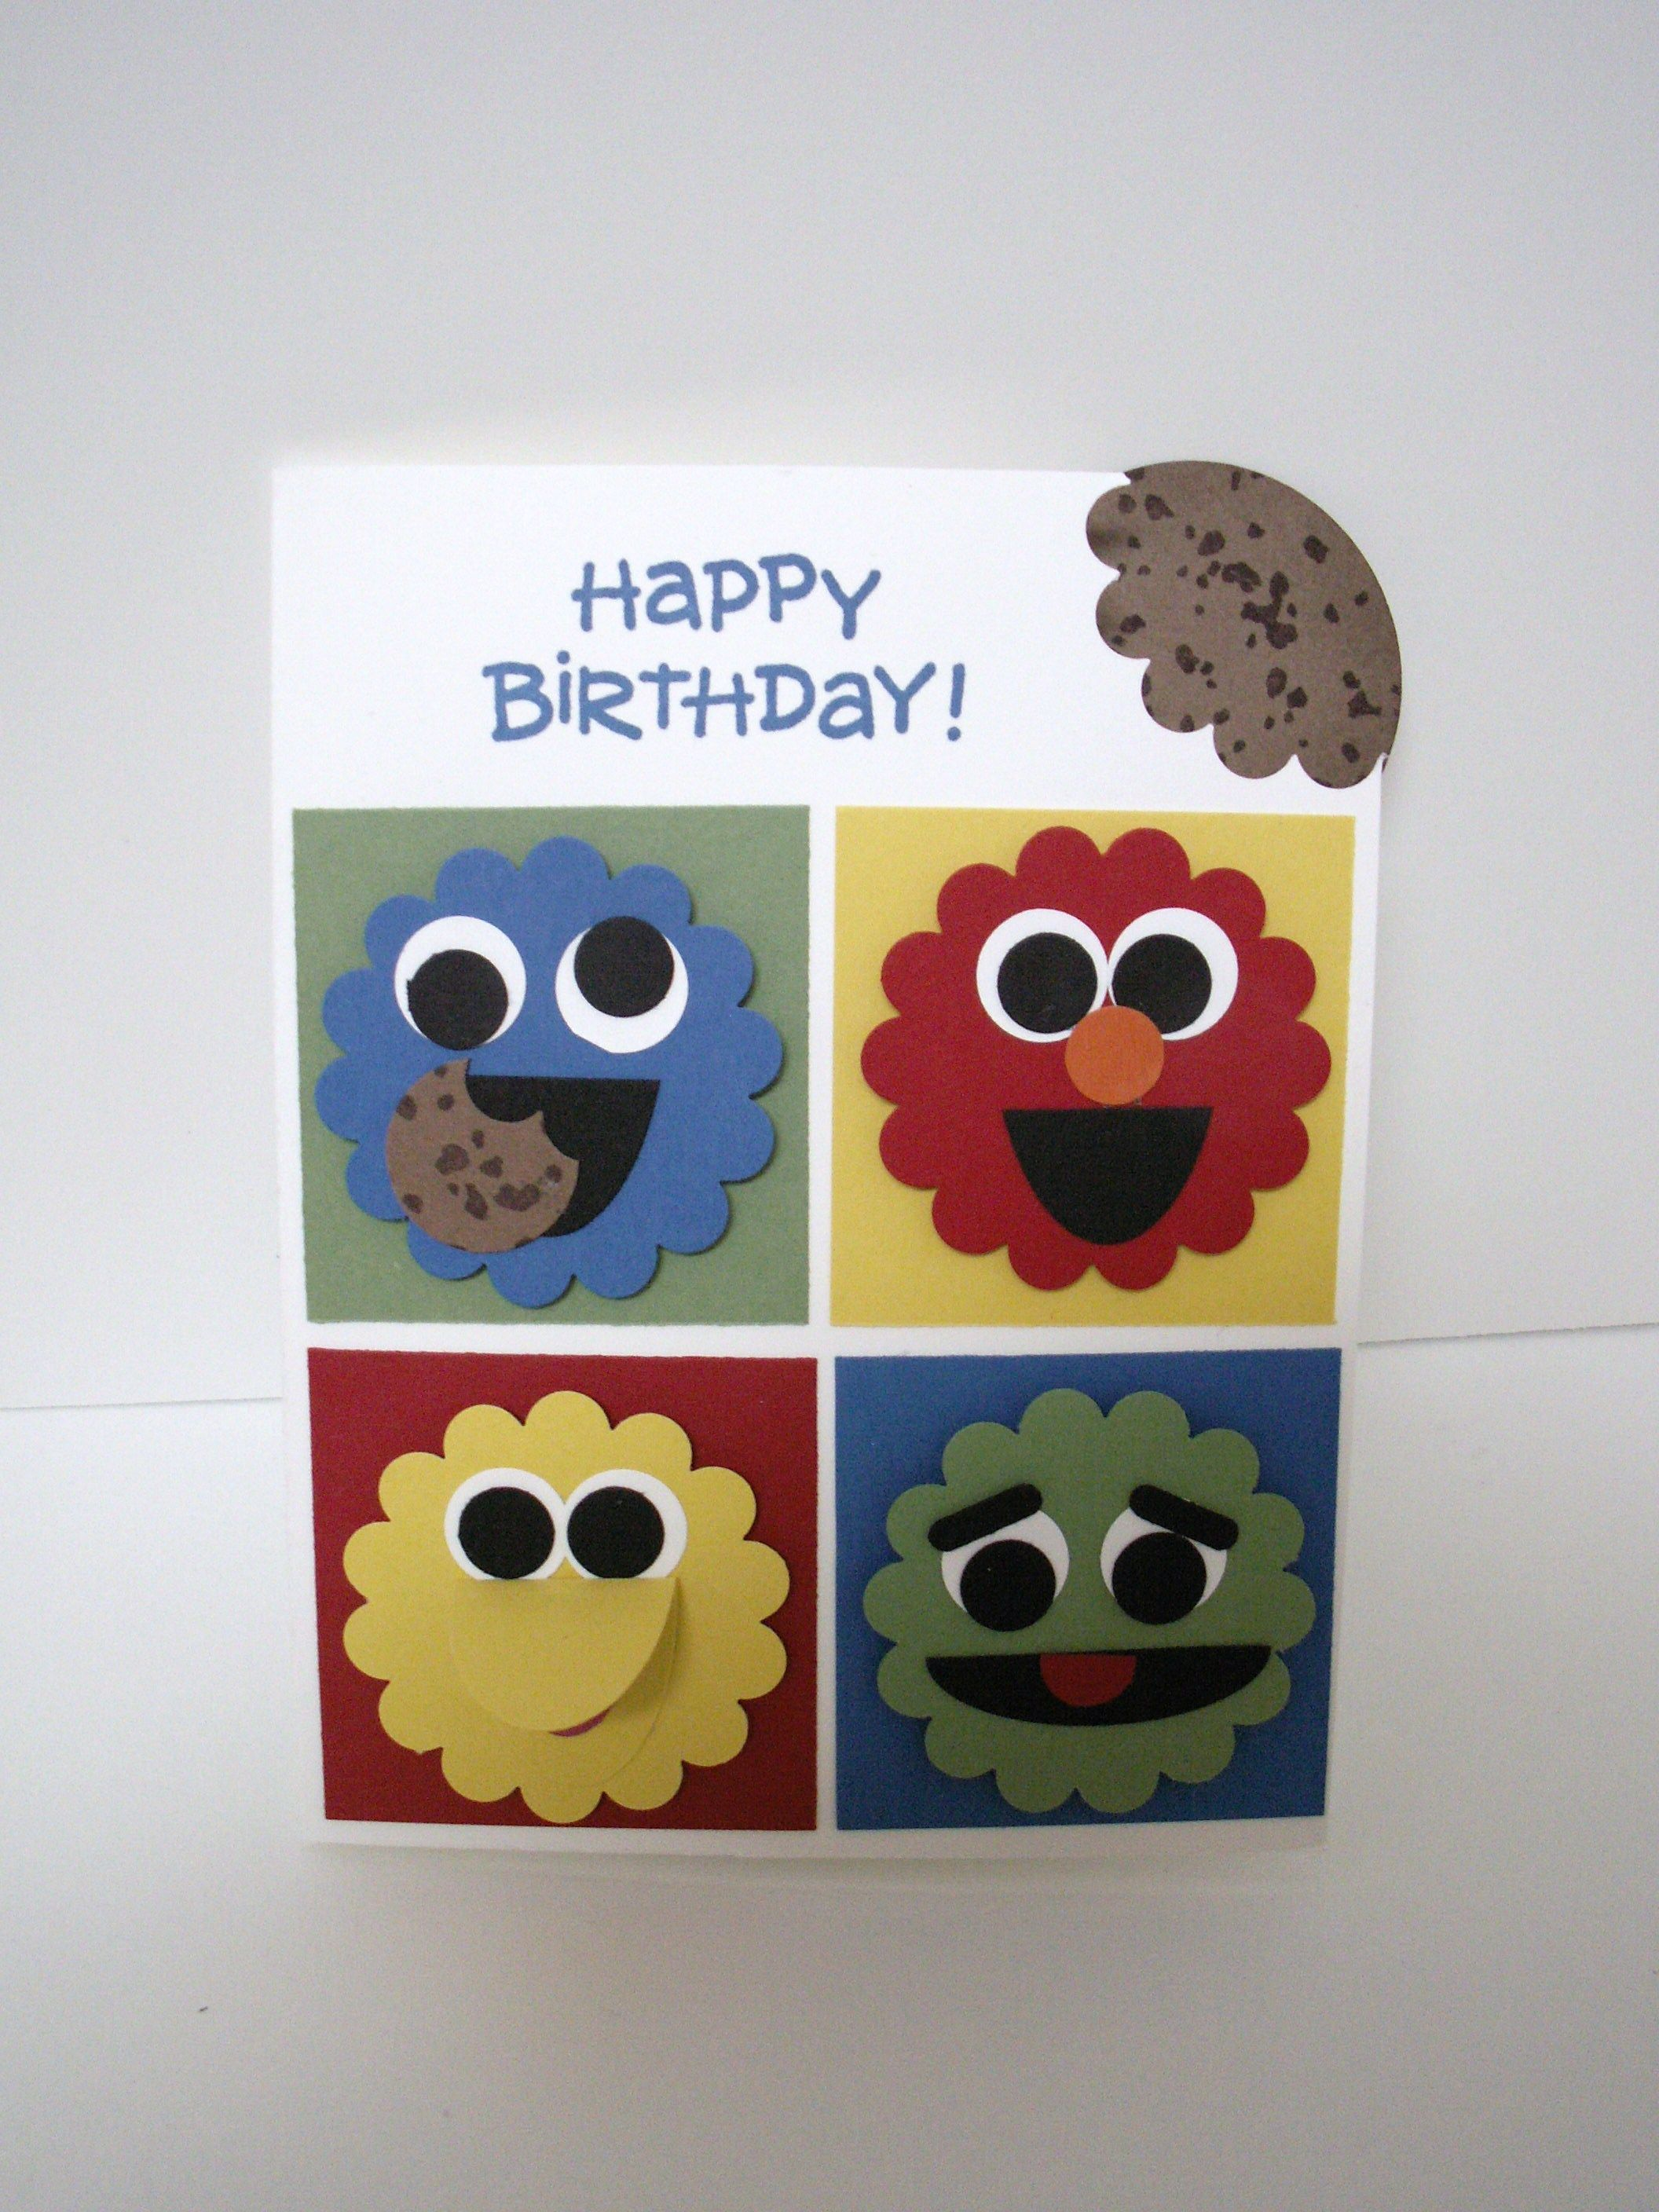 Birthday card for my 3 year old nephew